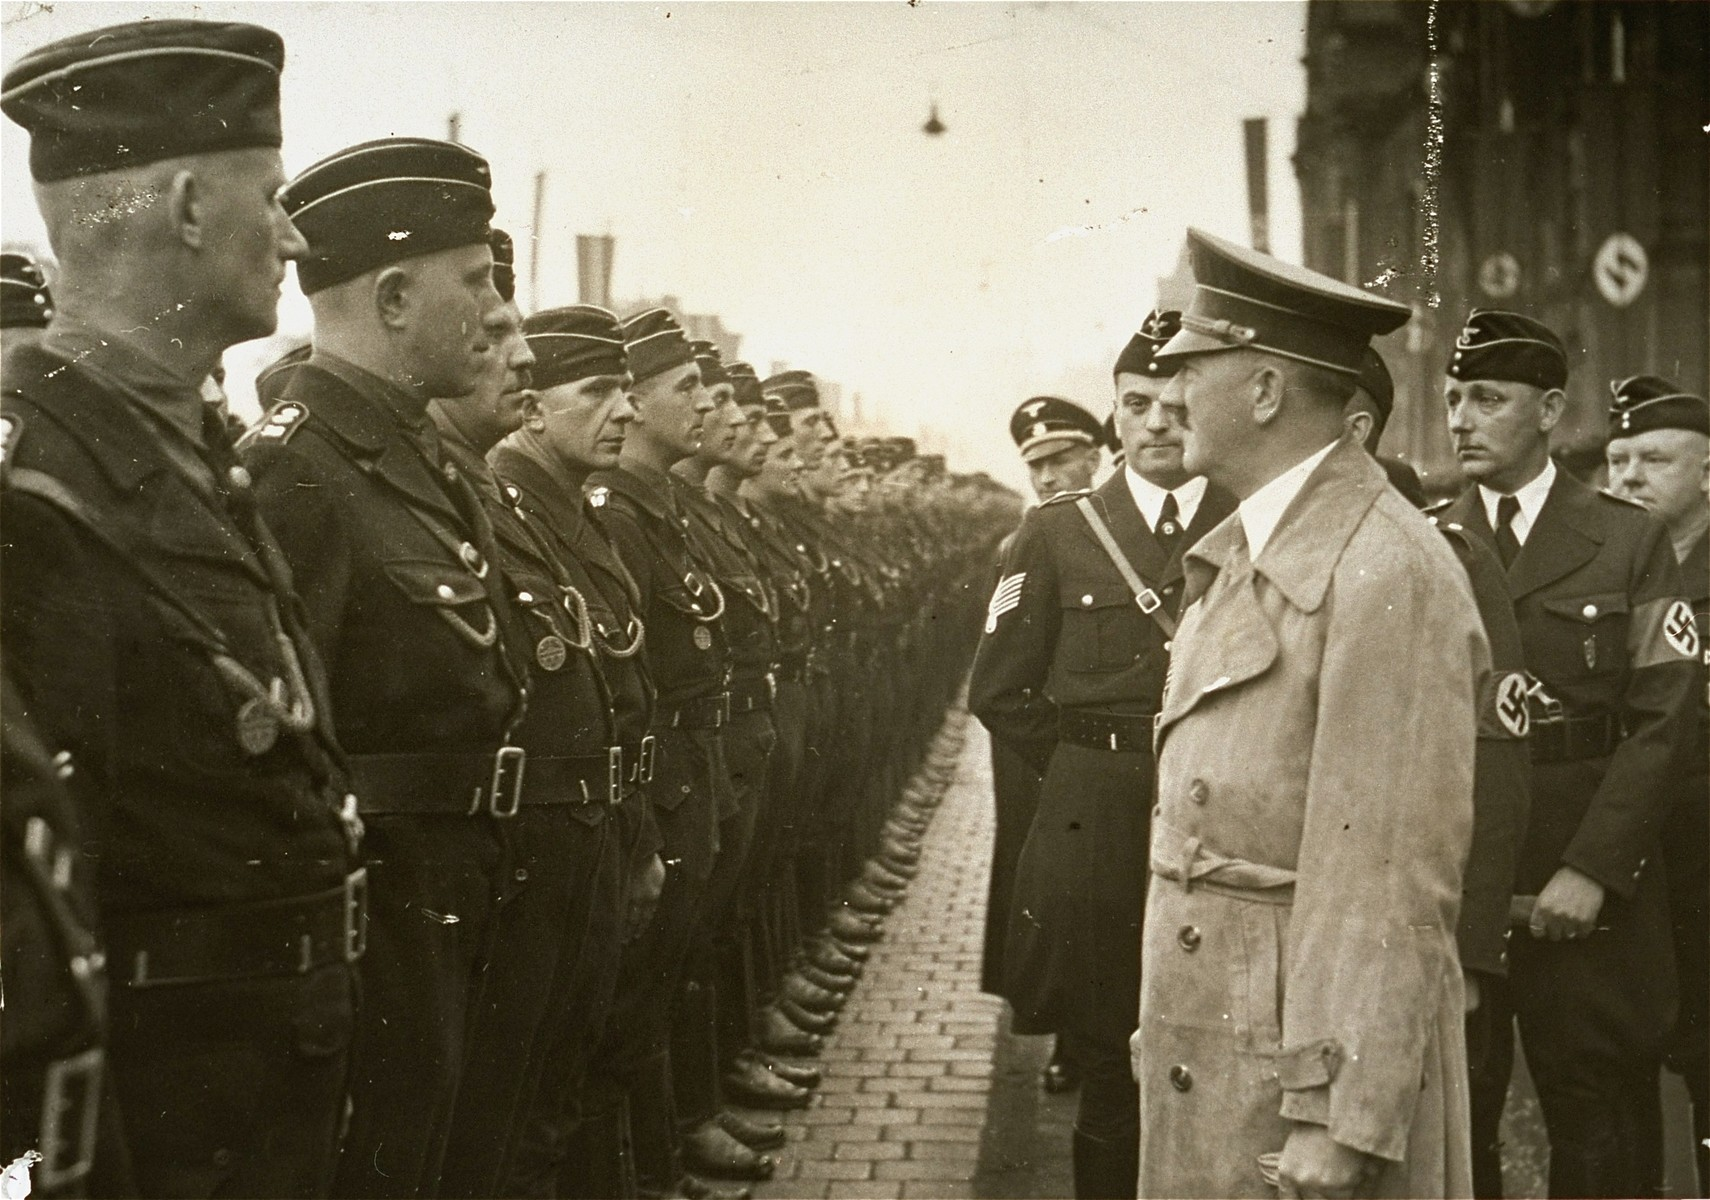 Hitler reviews a unit of workers during Reichsparteitag (Reich Party Day) celebrations in Nuremberg.